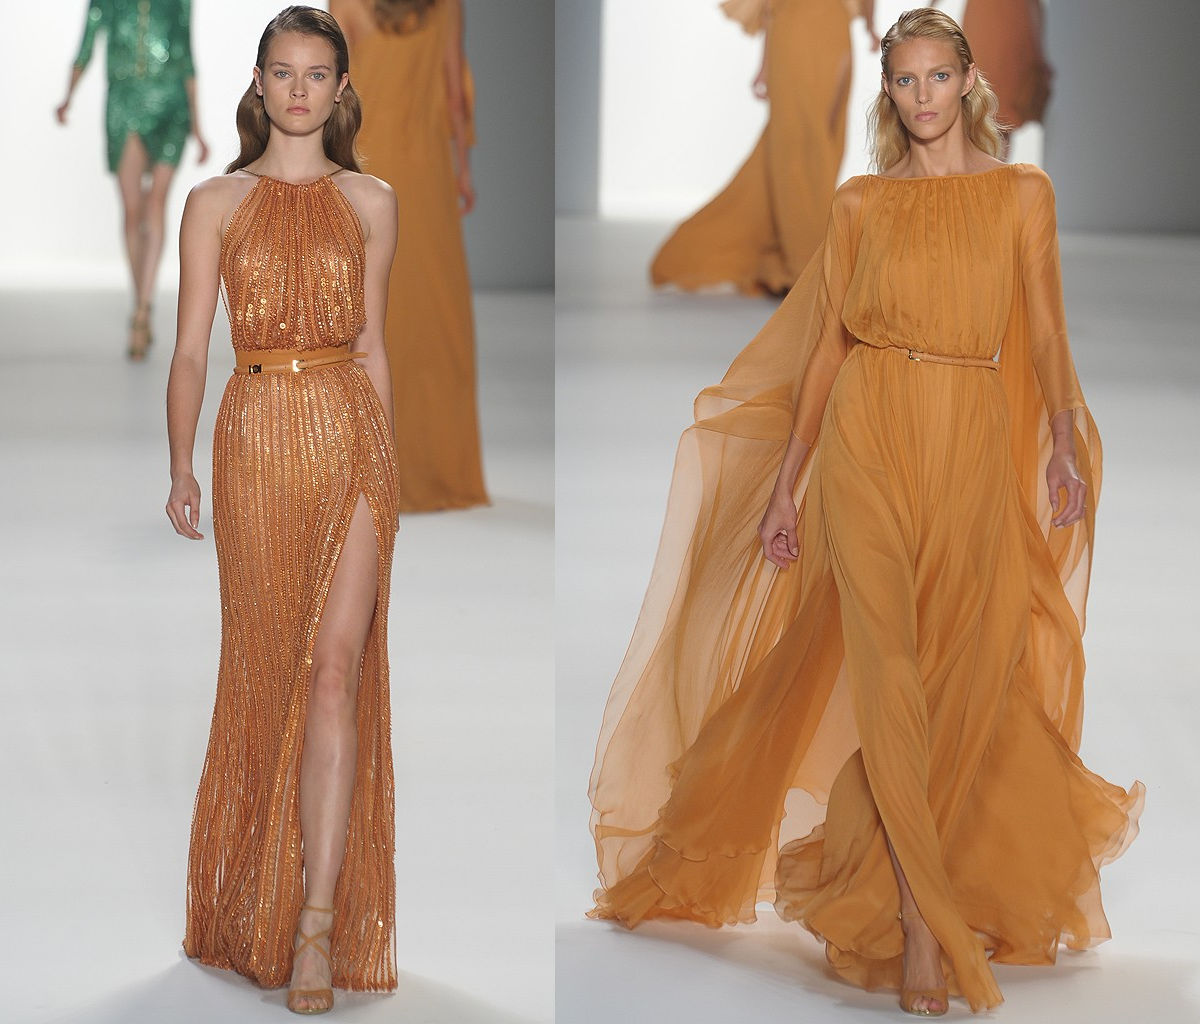 Elie-saab-bridesmaid-dresses-nectarine-beaded-halter-gown.original